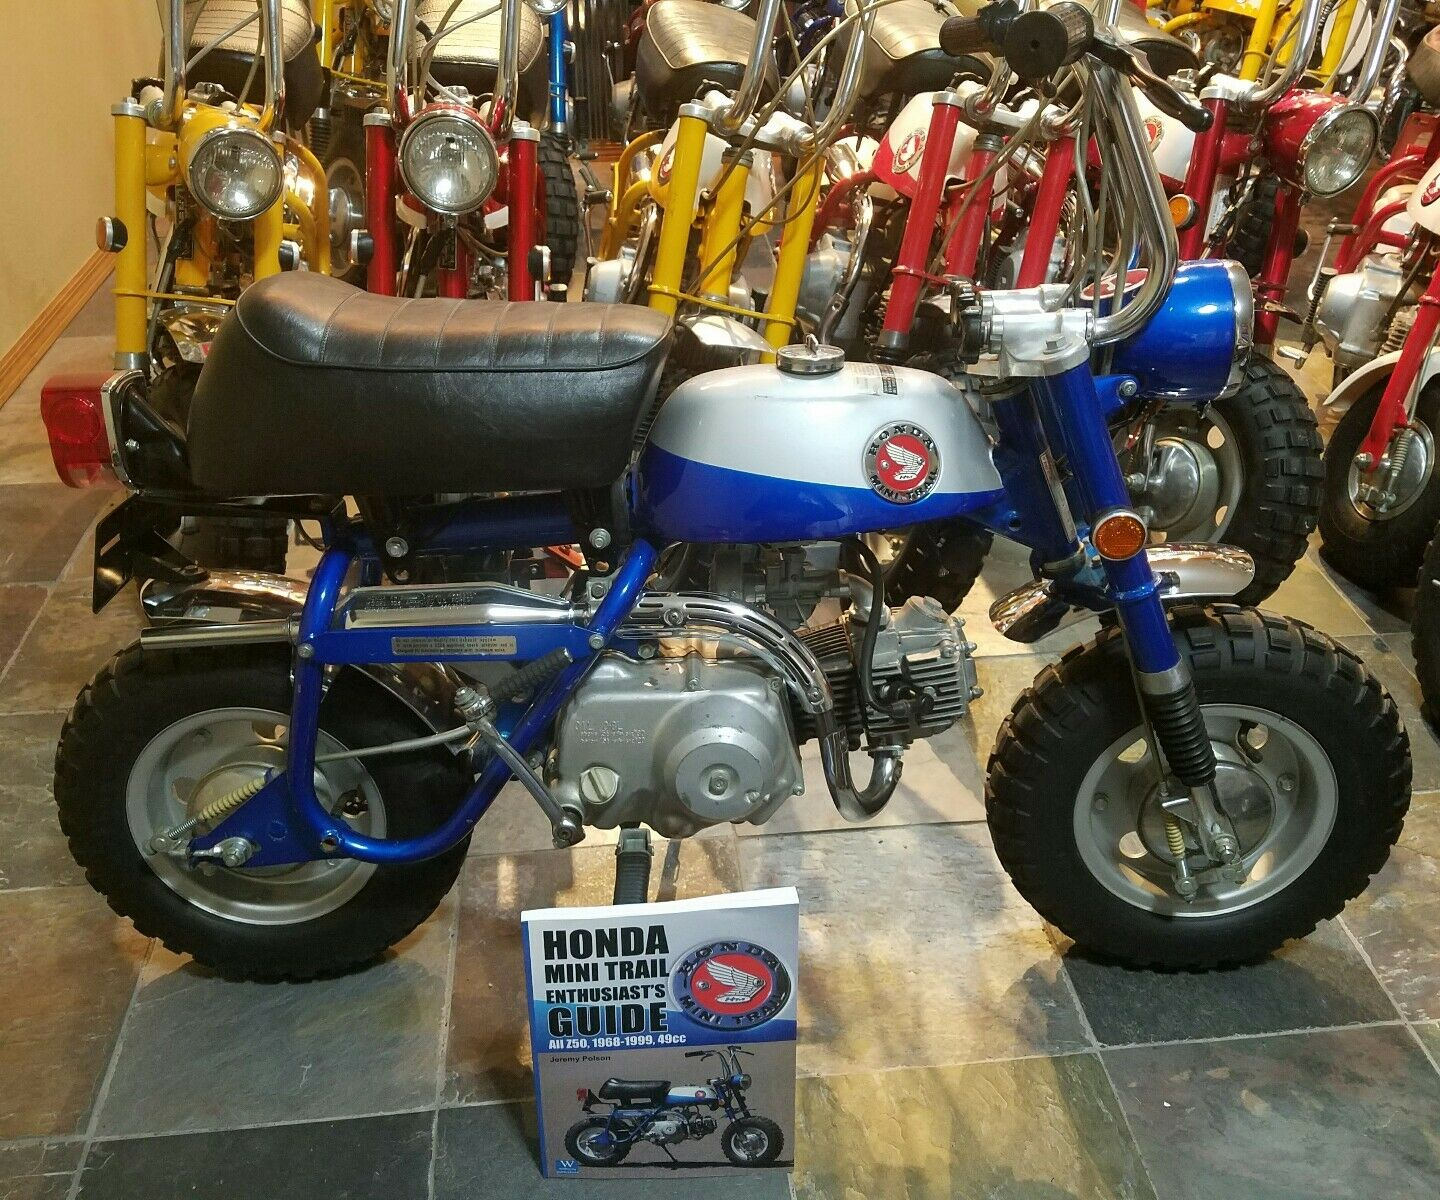 Honda Mini Trail Enthusiasts Guide Book Signed Author Copy Z50 Ww Old Bikes Norton Secured Powered By Verisign